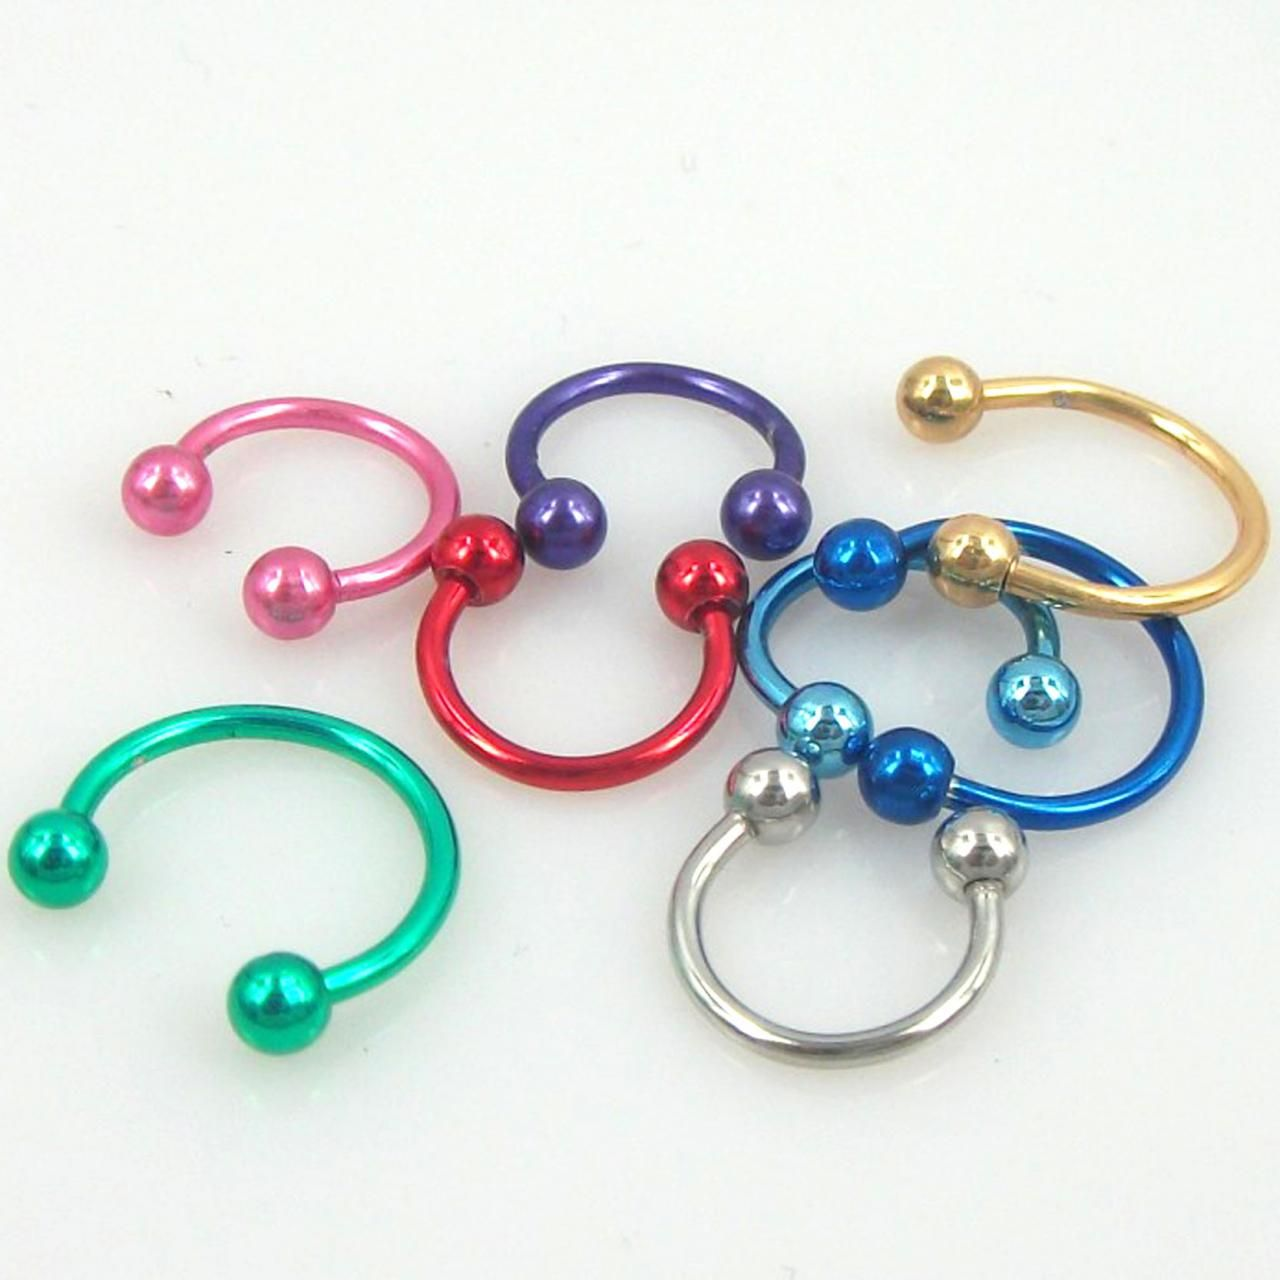 Body piercing jewelry  pcs Colorful Ball Nose Ring Septum Studs Stainless  Piercing